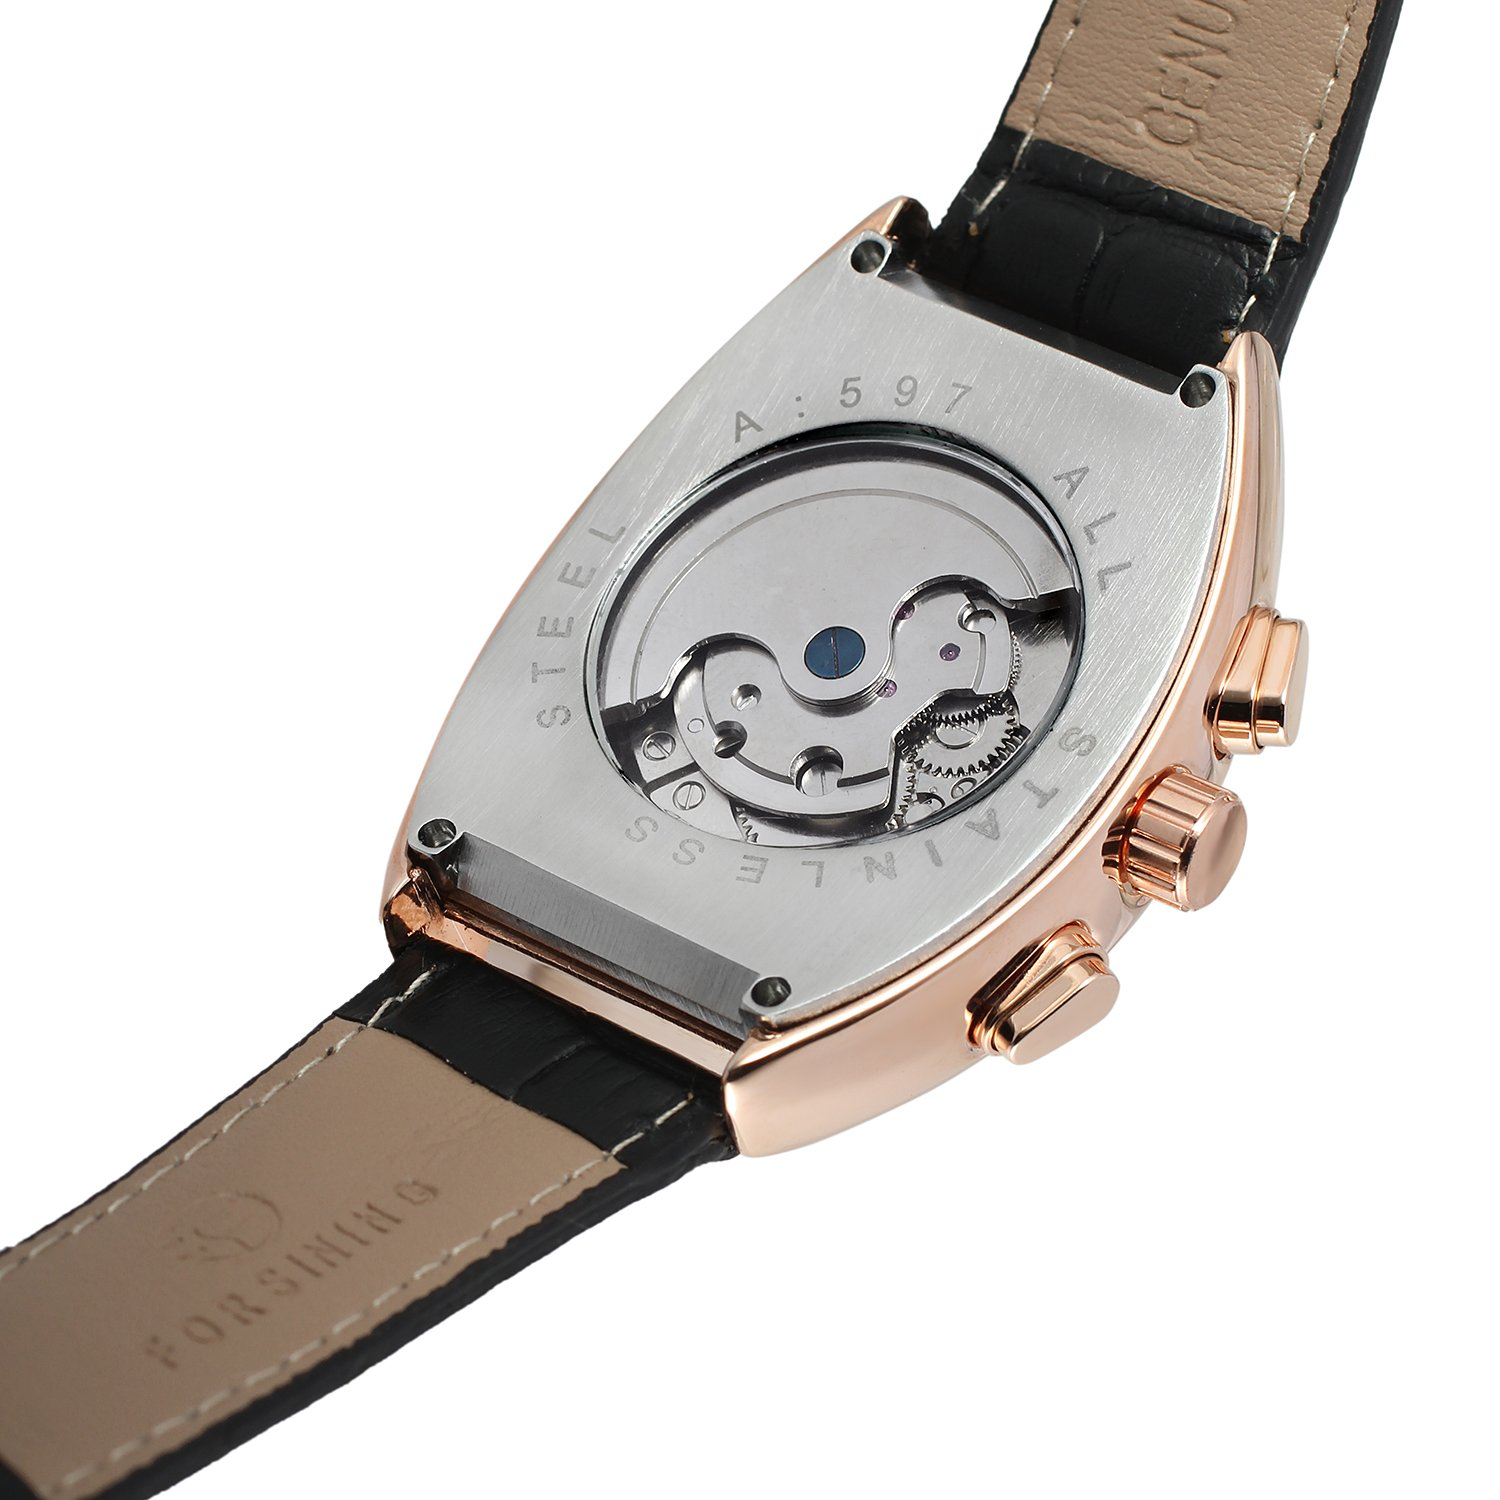 Forsining Men's Automatic Self-winding Tourbillon Calendar Brand Learher Strap Collectiton Watch FSG9409M3R5 by FORSINING (Image #2)